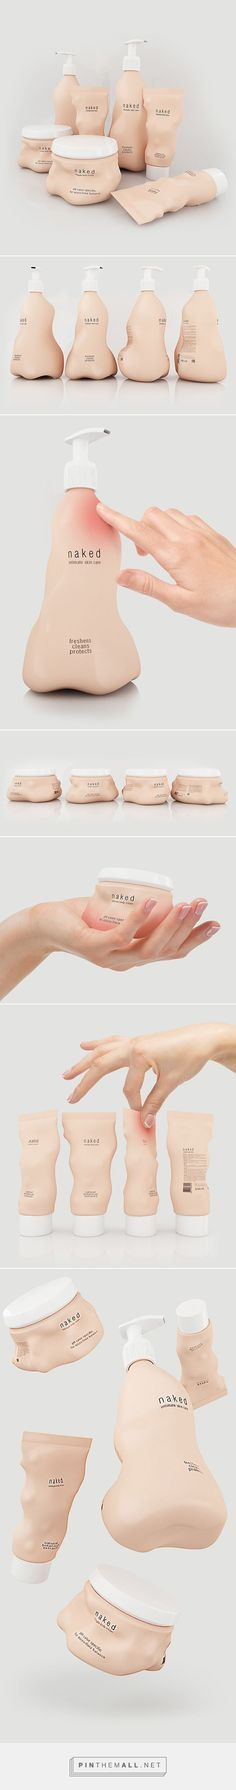 Intimate Care Products Package Concept designed by Stas Neretin: